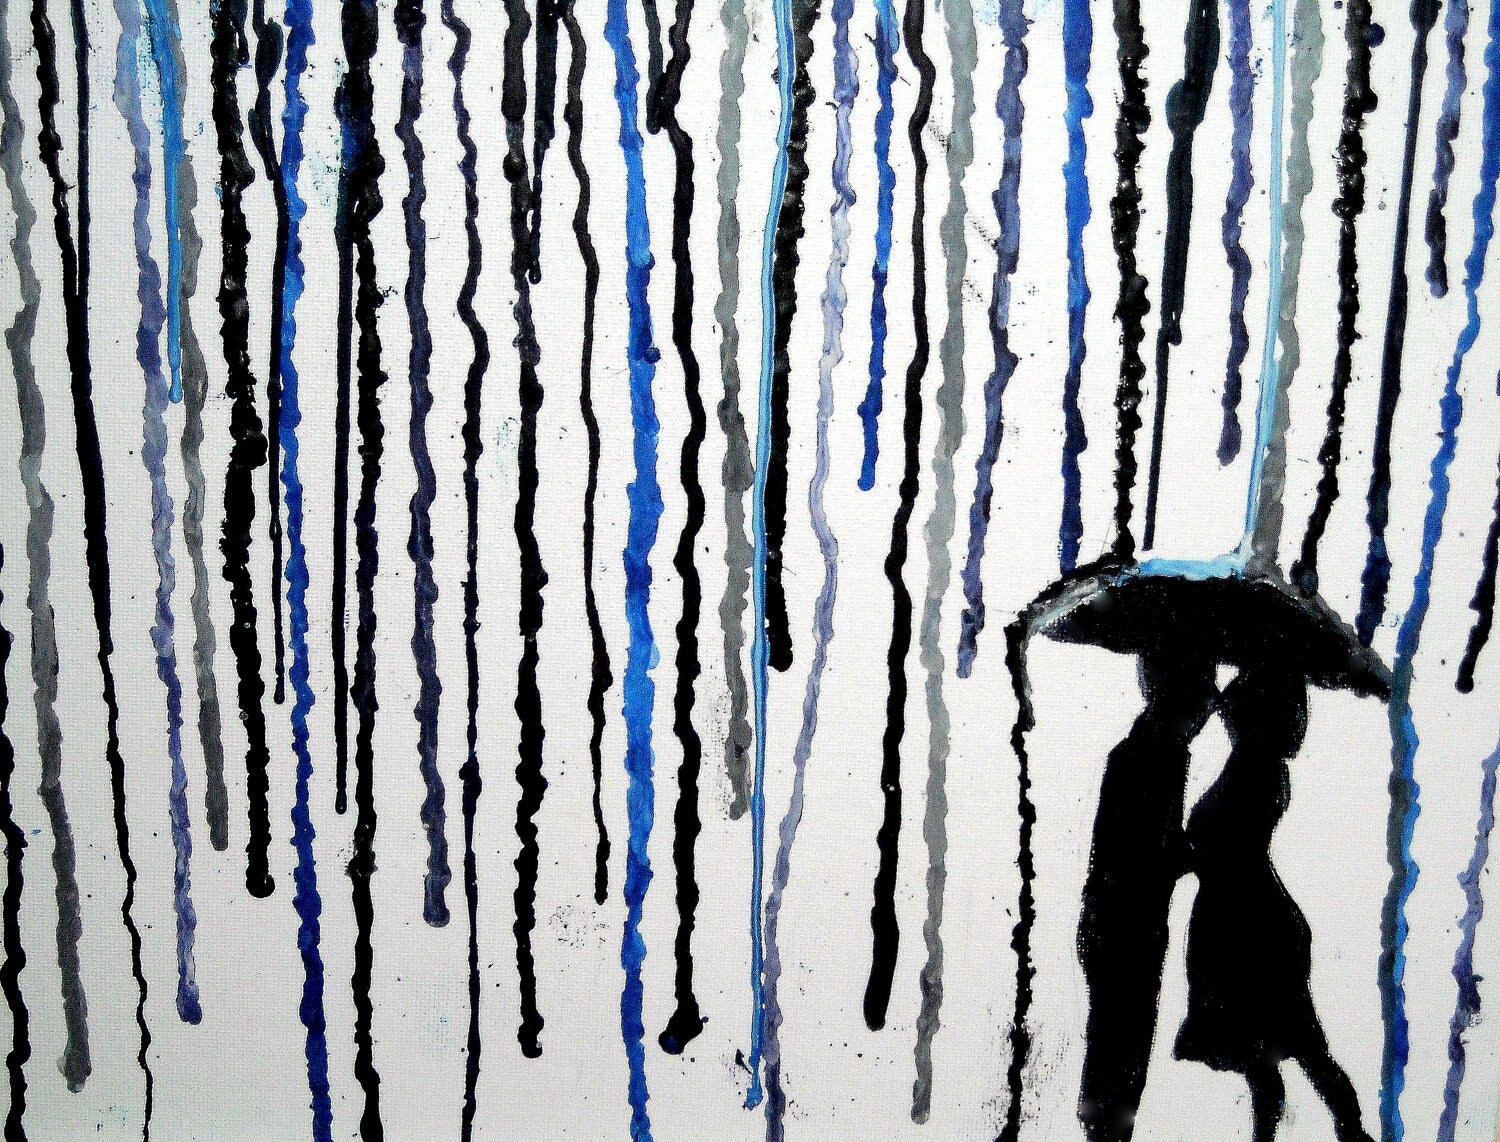 Couple Kissing Under Umbrella Silhouette Crayon Art Drippng crayon    Couple Silhouette Umbrella Crayon Art